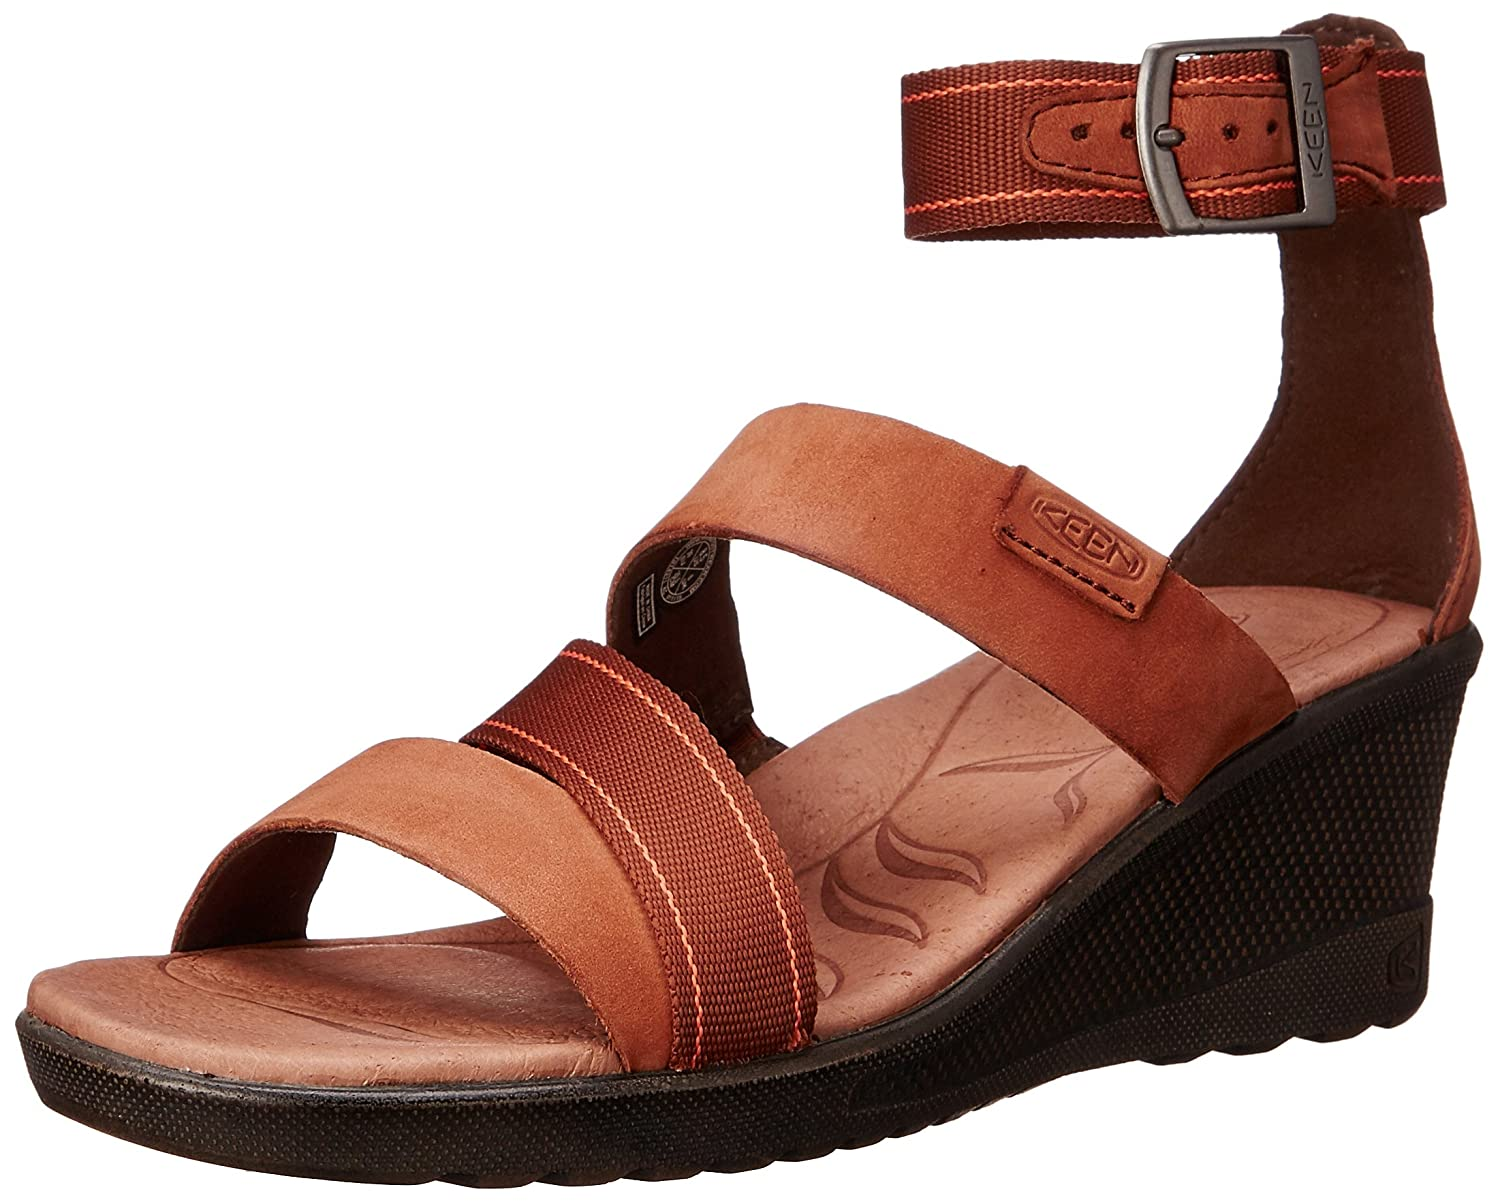 KEEN Women's Skyline Ankle Wedge Sandal B00ZFLG34Q 6 B(M) US|Tortoise Shell